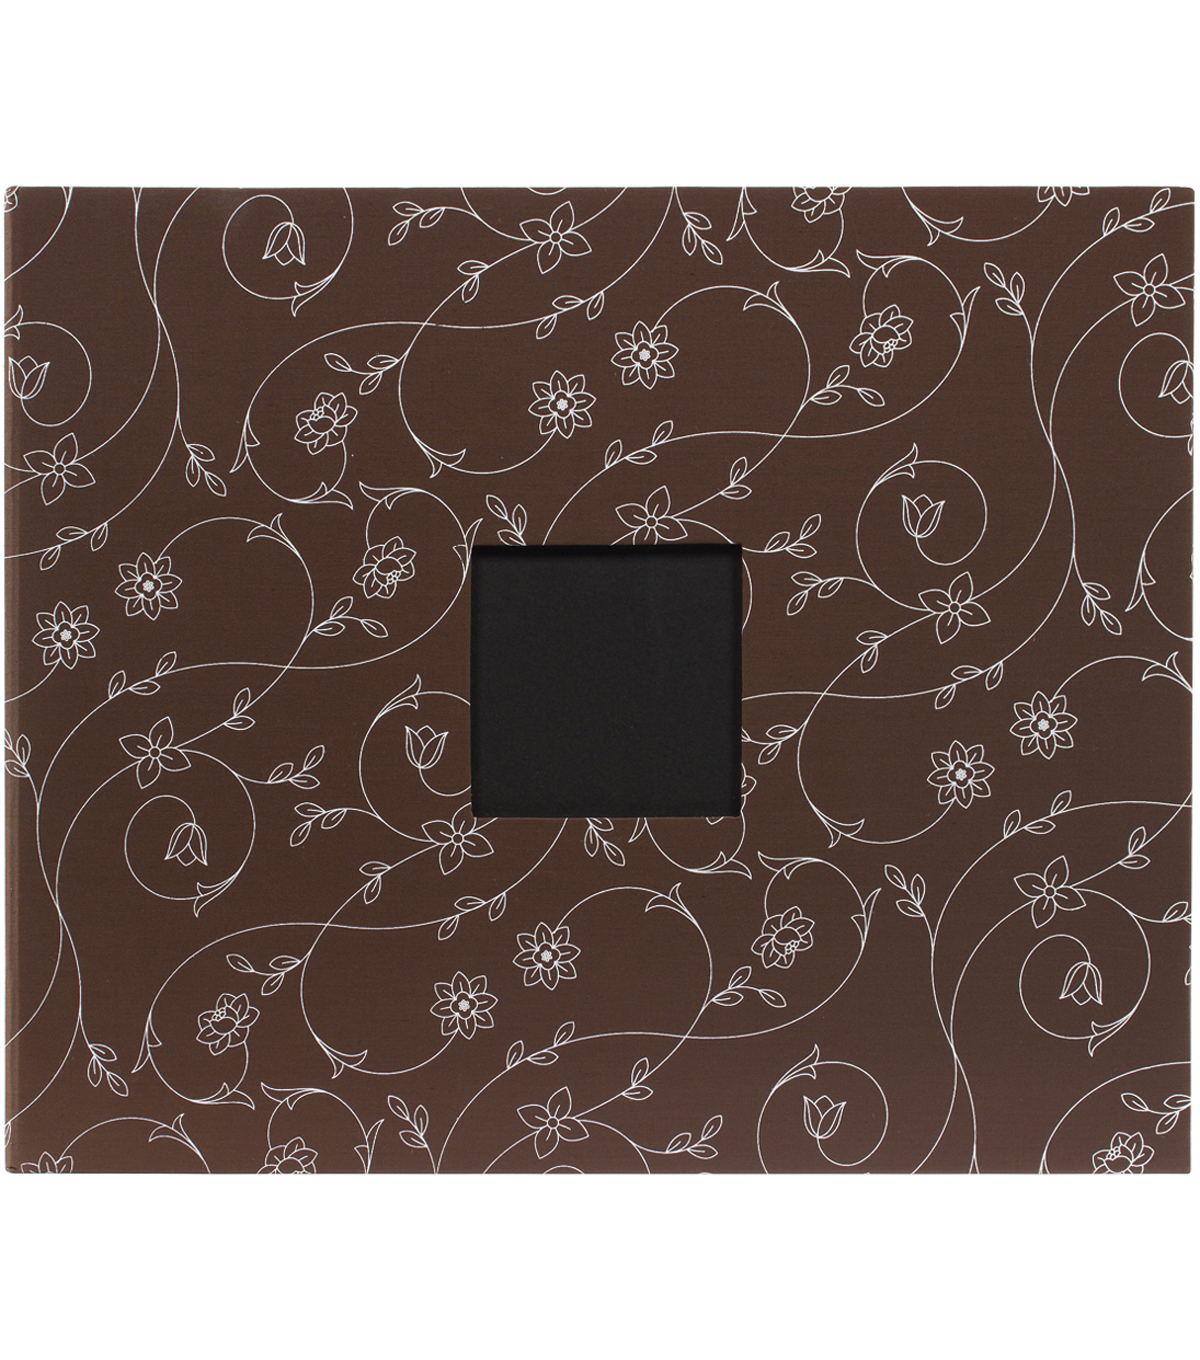 "American Crafts Patterned D-Ring Album 12""X12""-Chestnut Vines"